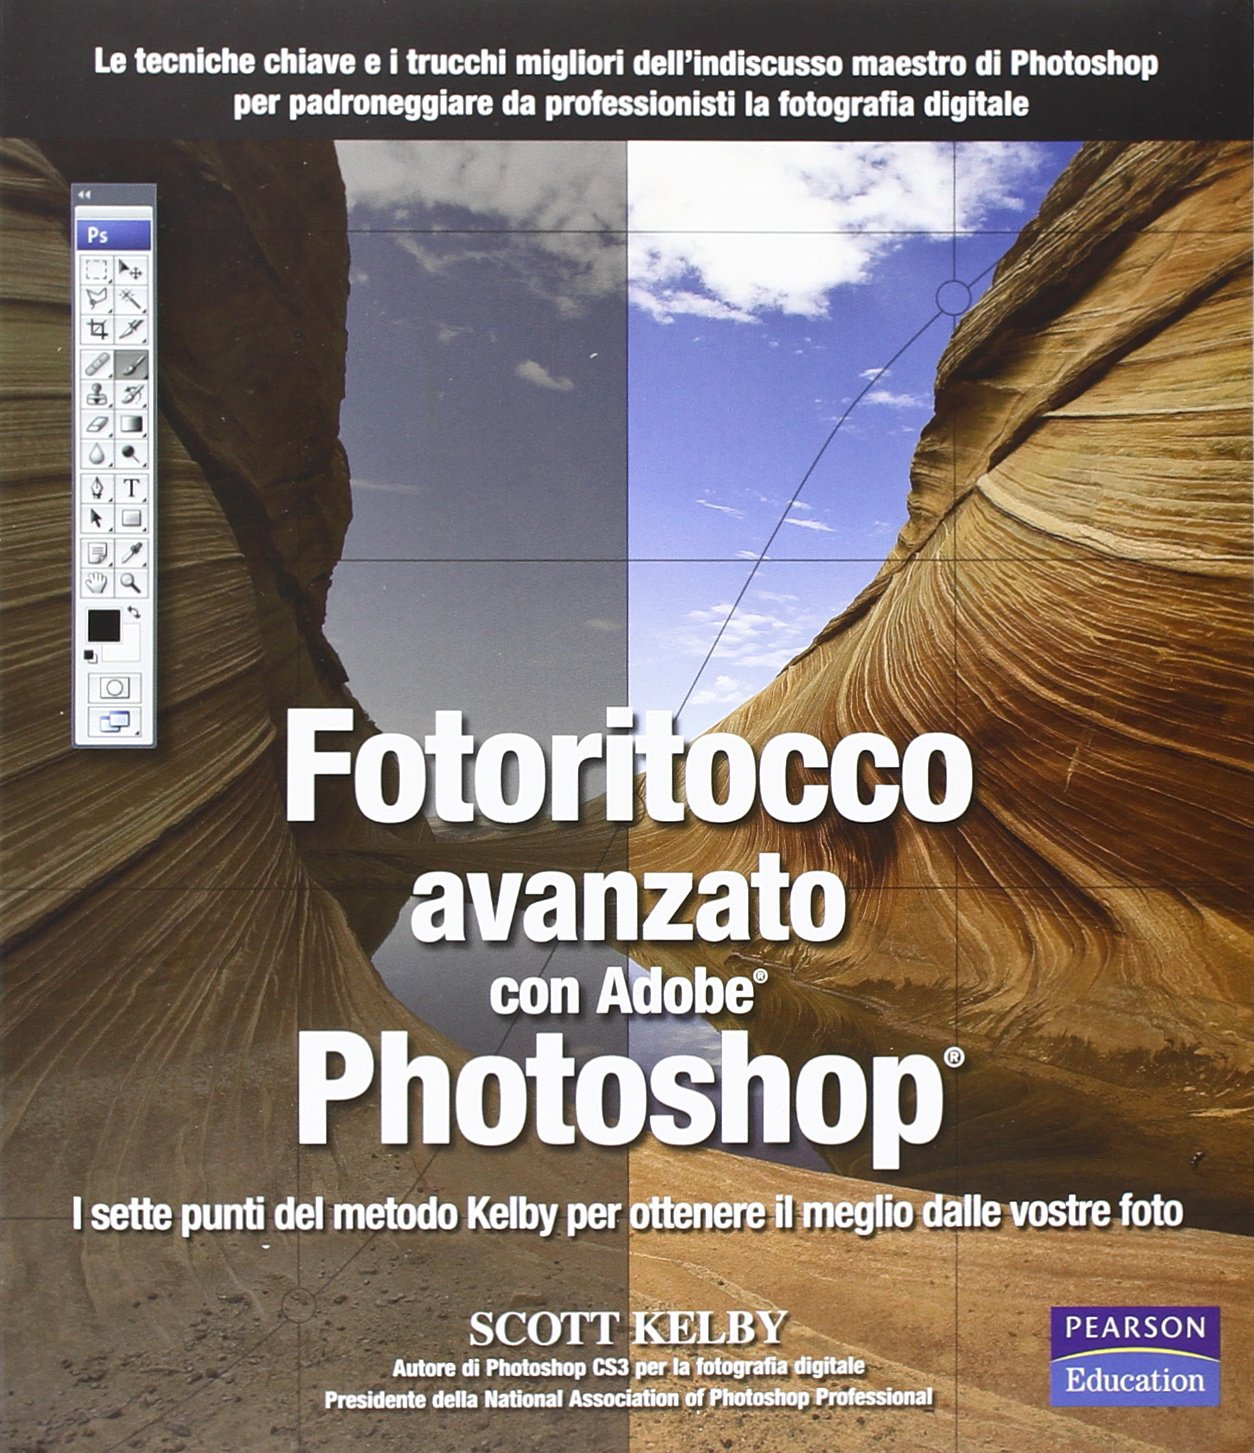 Fotoritocco avanzato con Adobe Photoshop